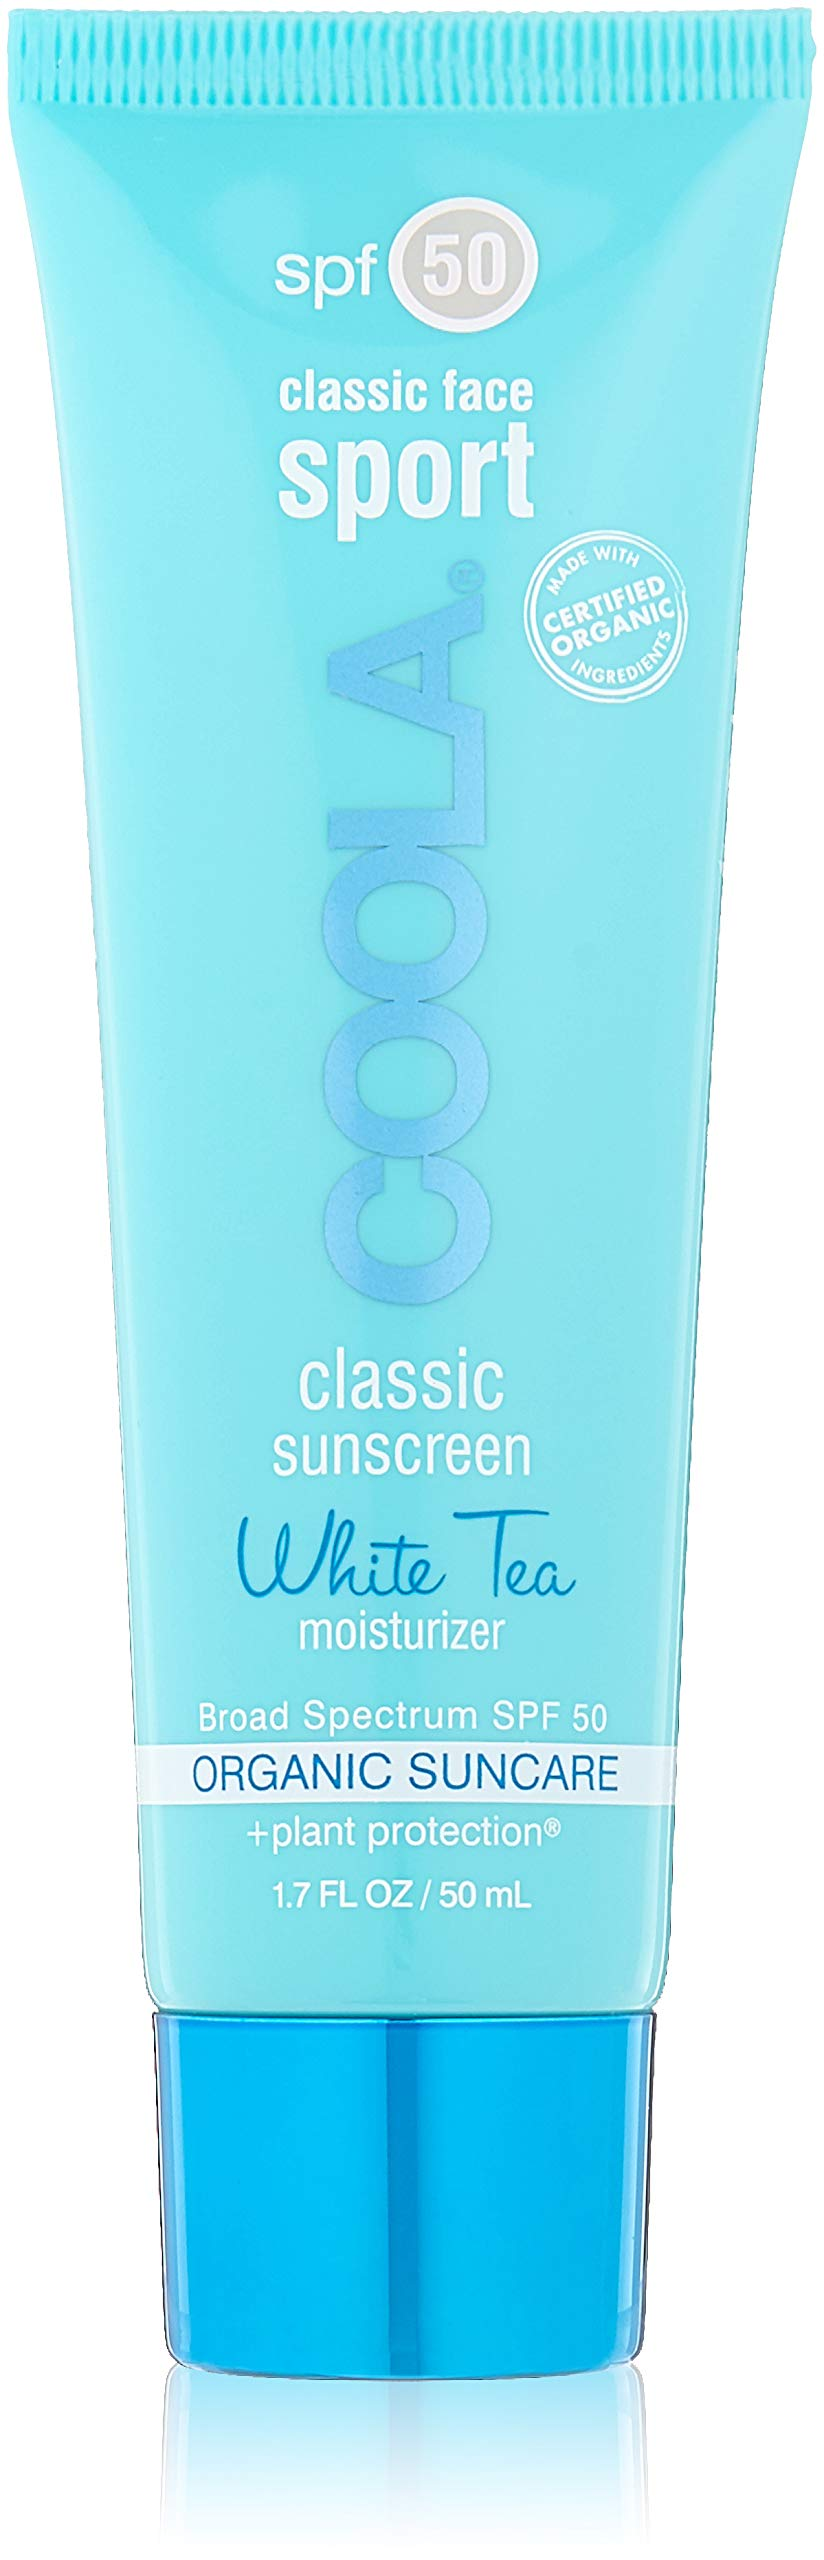 COOLA Suncare Classic Sport Face SPF 50 Sunscreen, White Tea, 1.7 fl. oz. by Coola Suncare